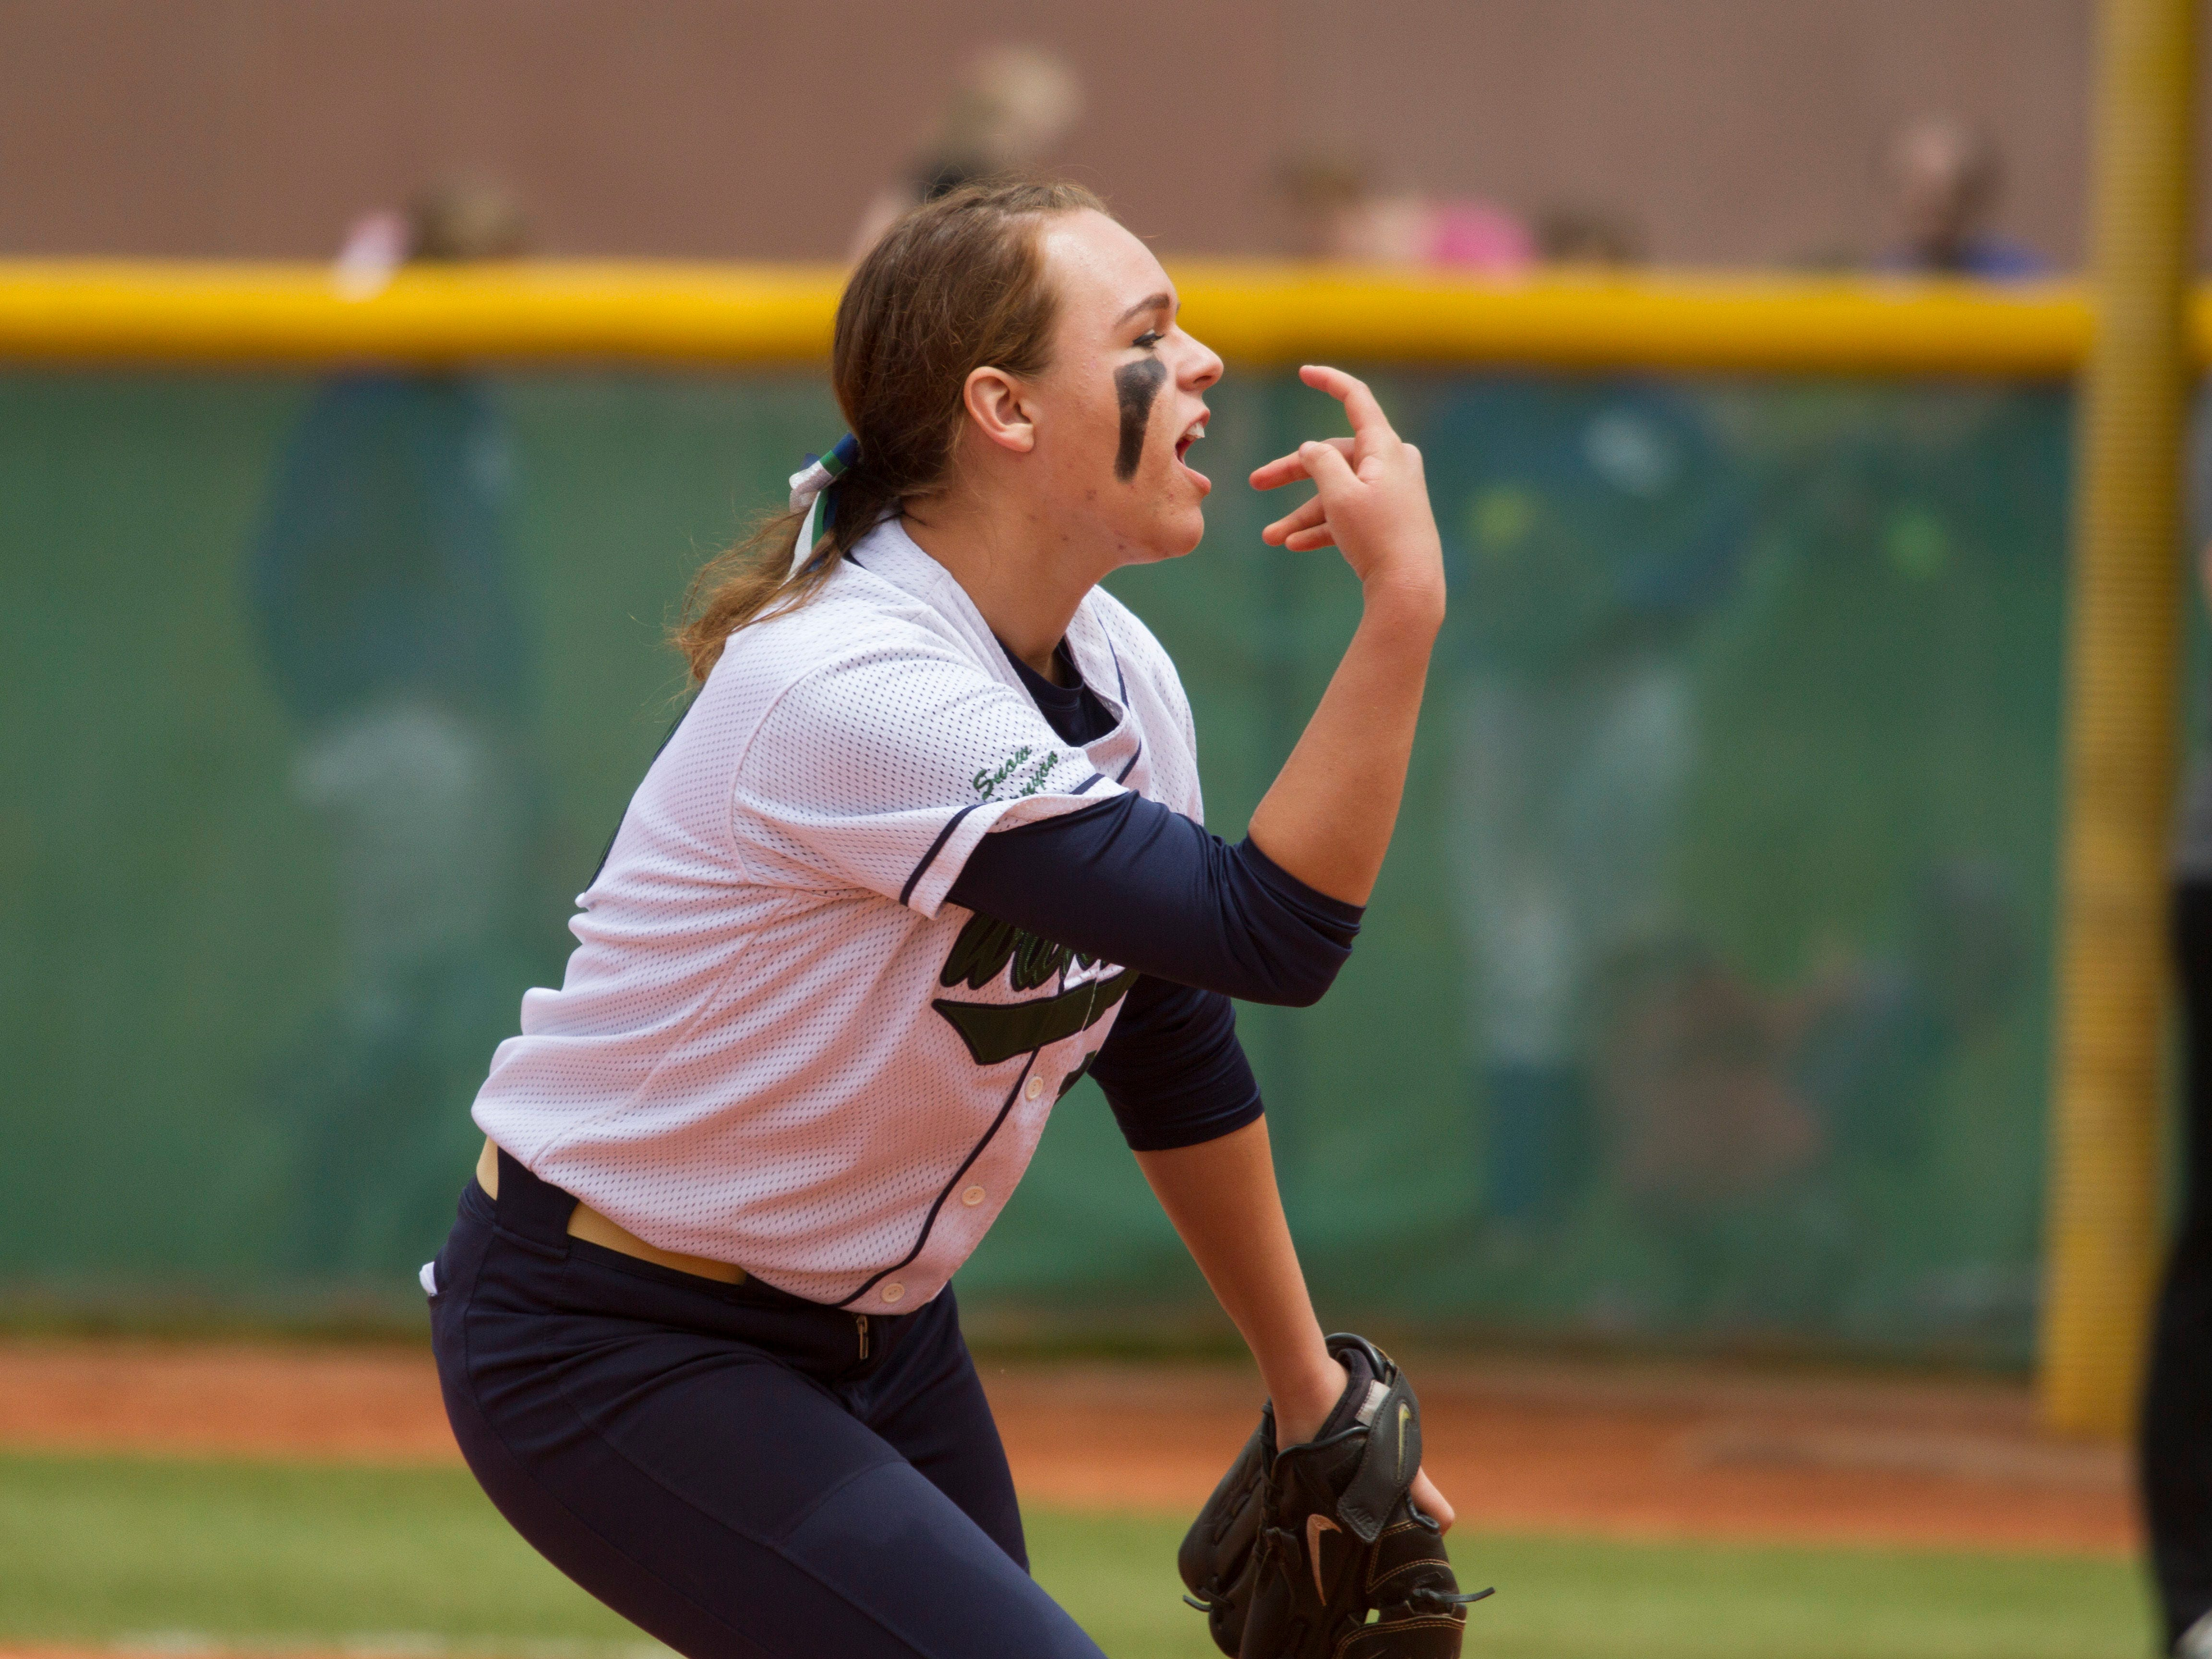 Snow Canyon pitcher Heather Prestwich throws against Morgan on Saturday.